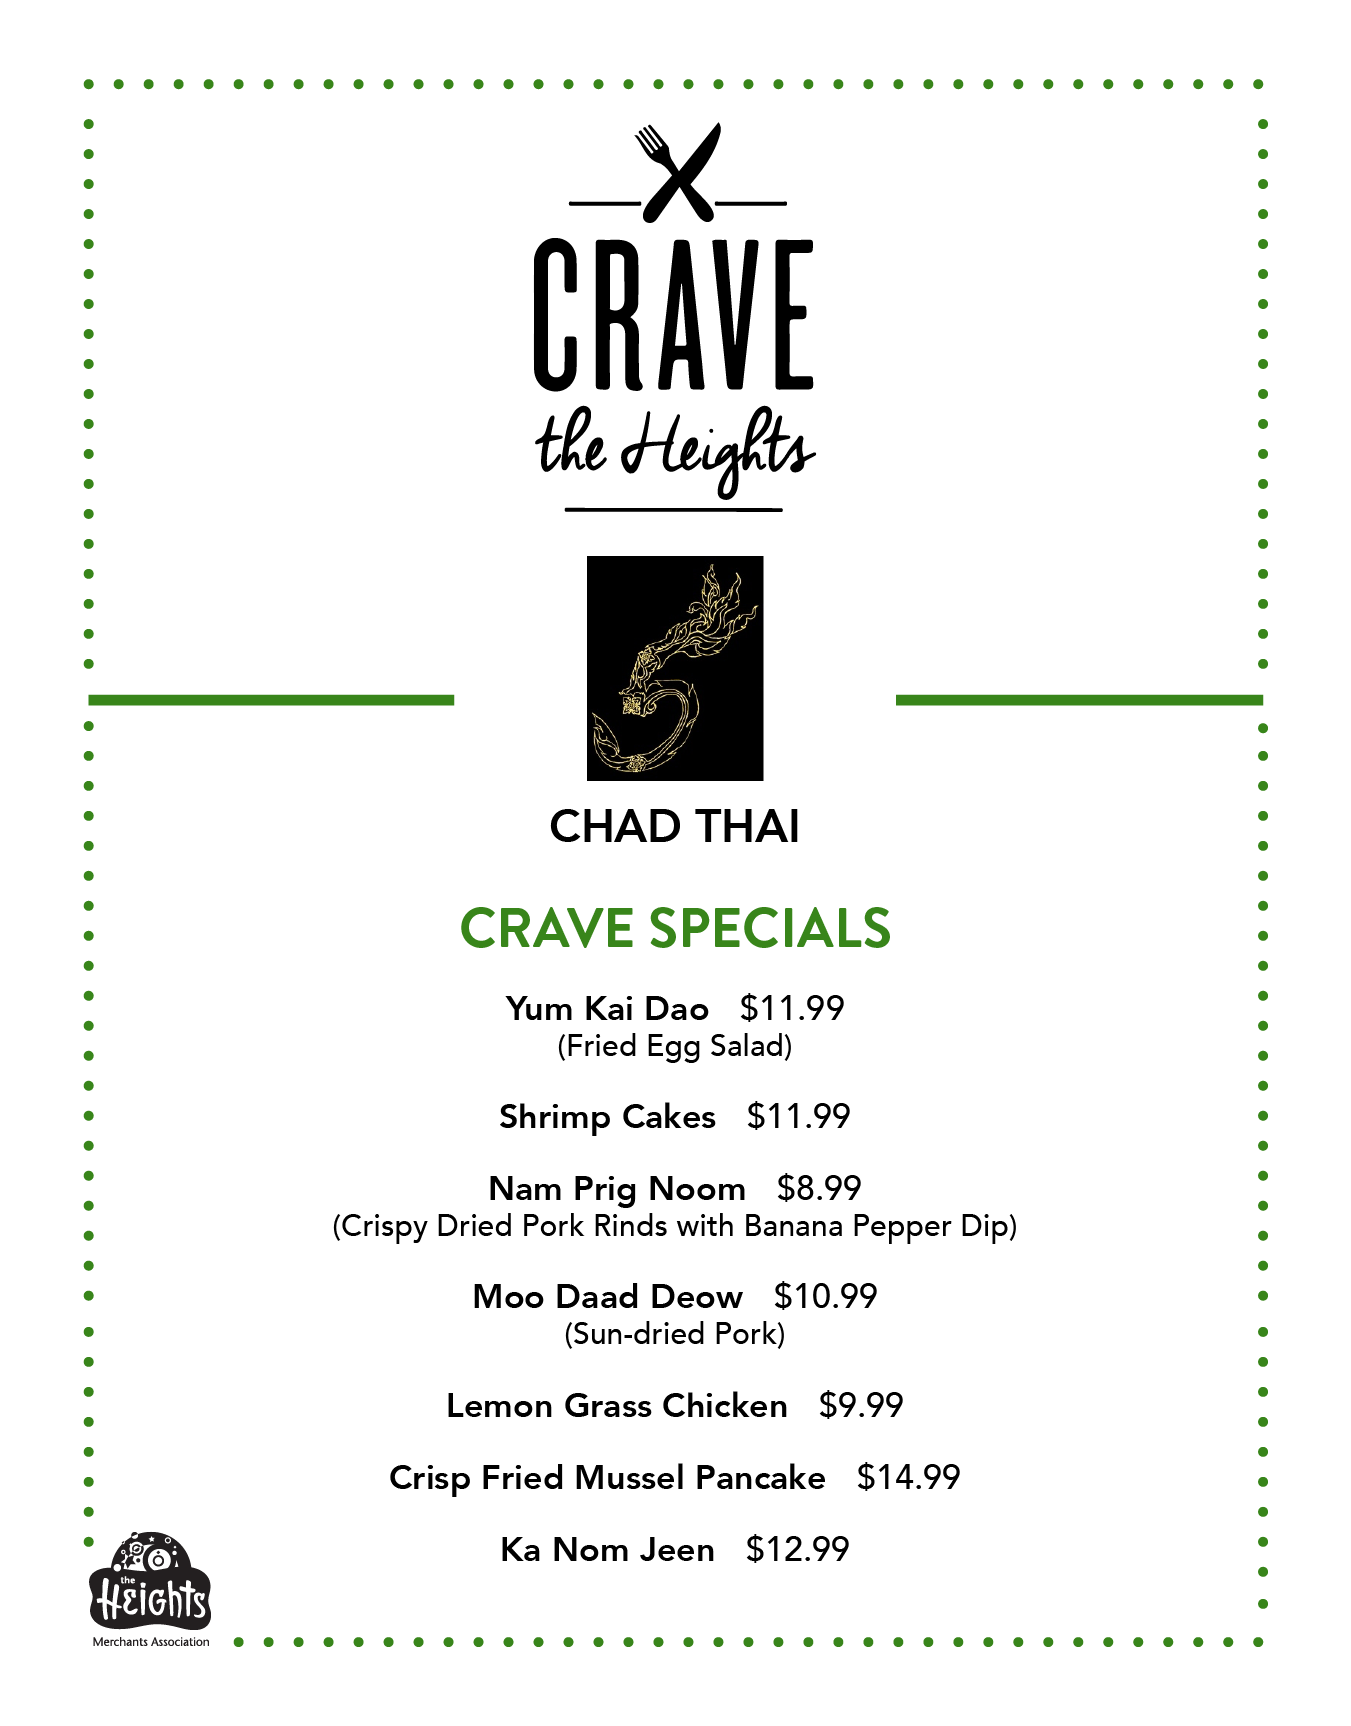 Chad Thai Menu